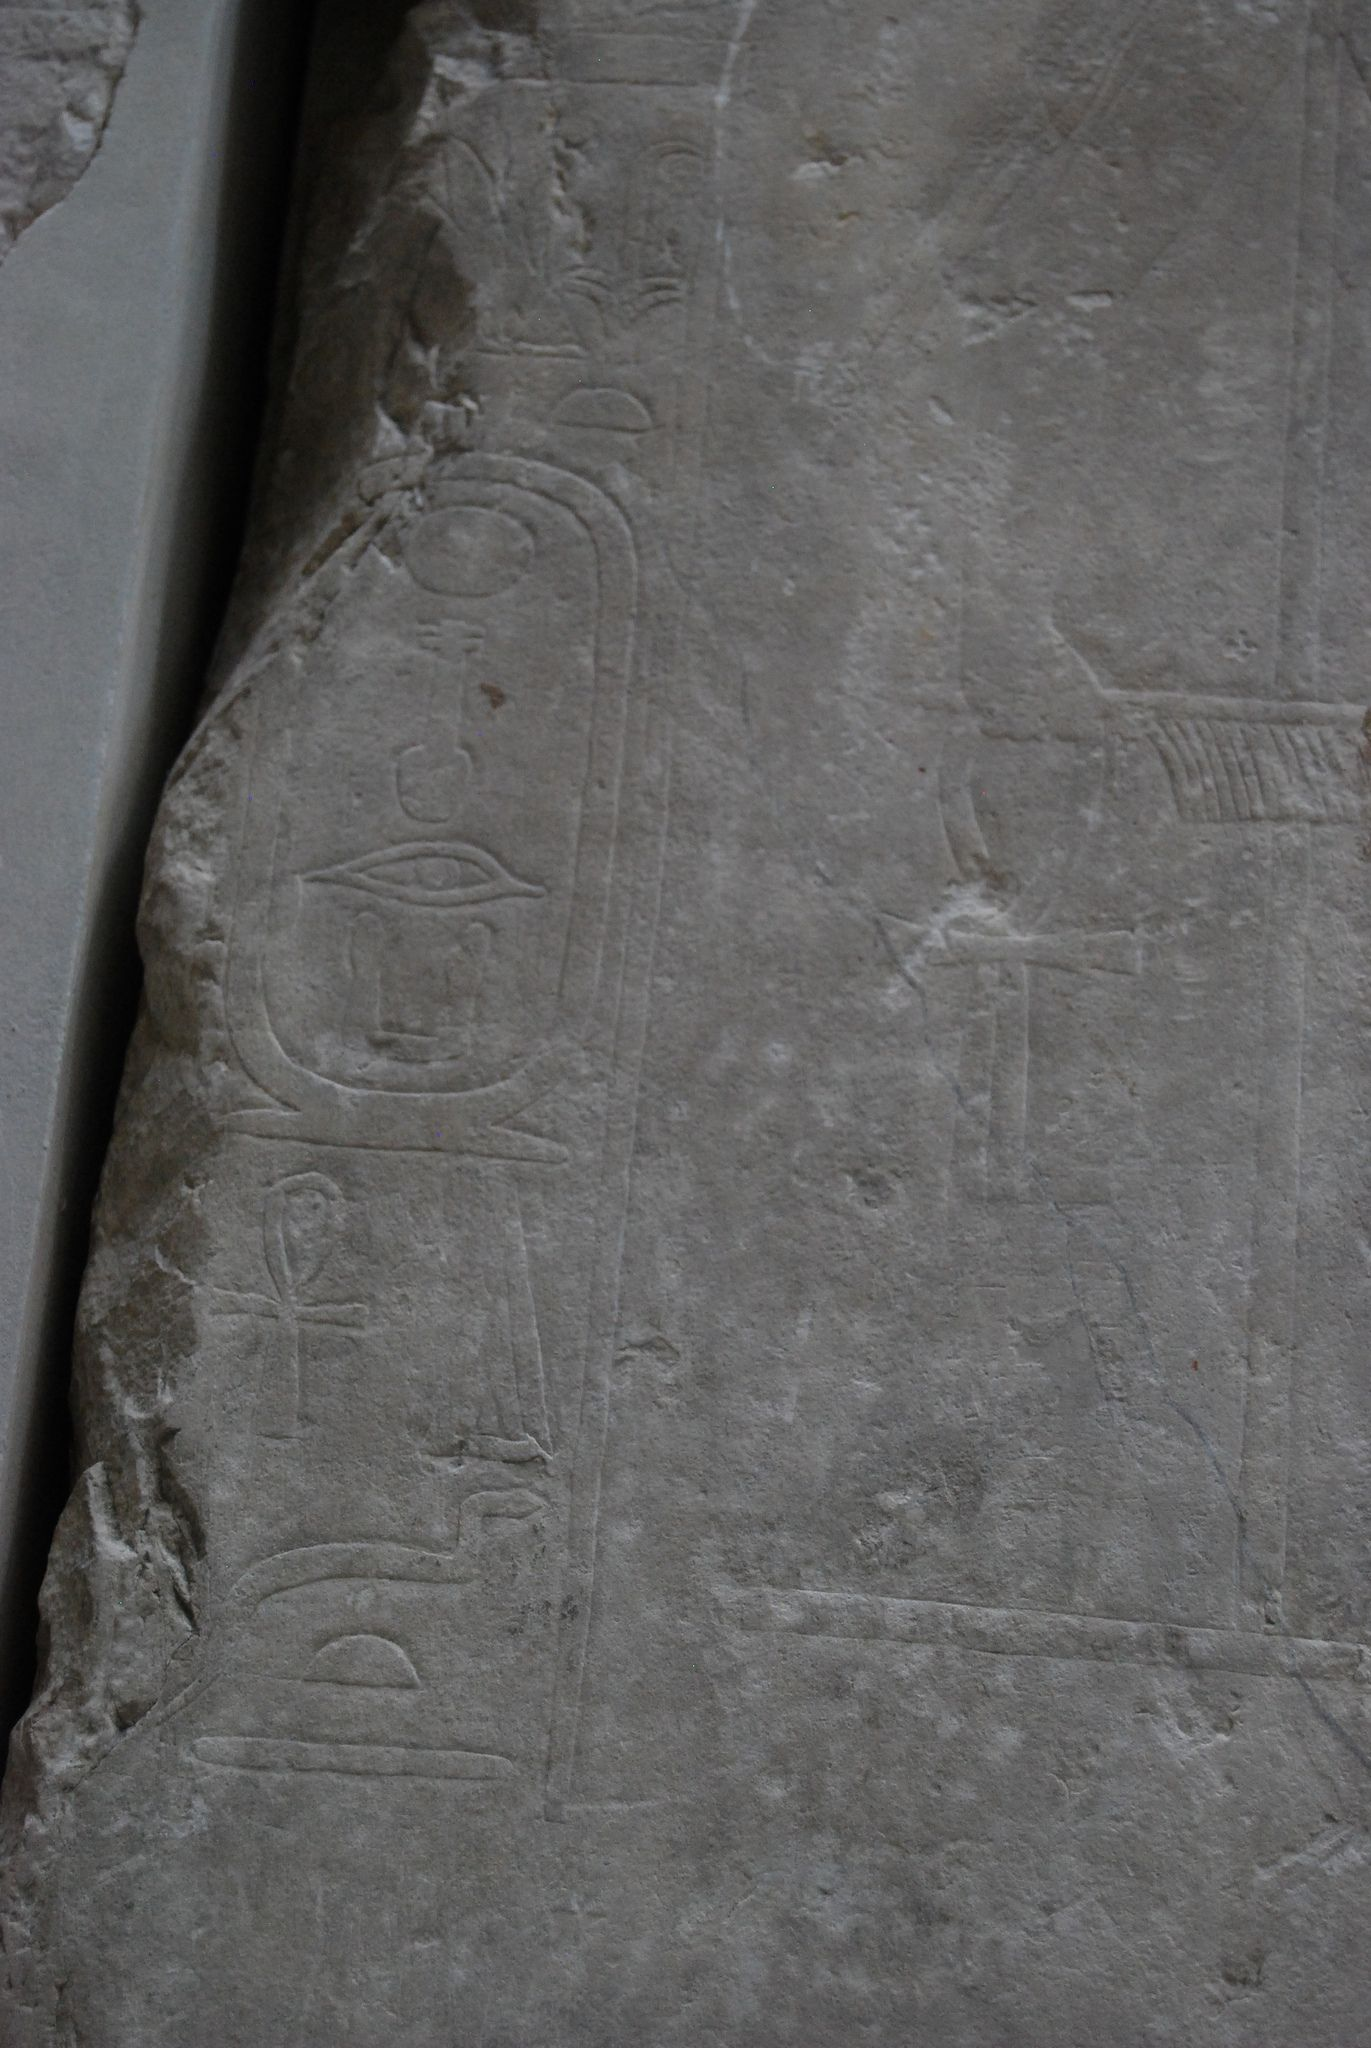 Cartouche of Neferirkare (With images) Egypt, Ancient